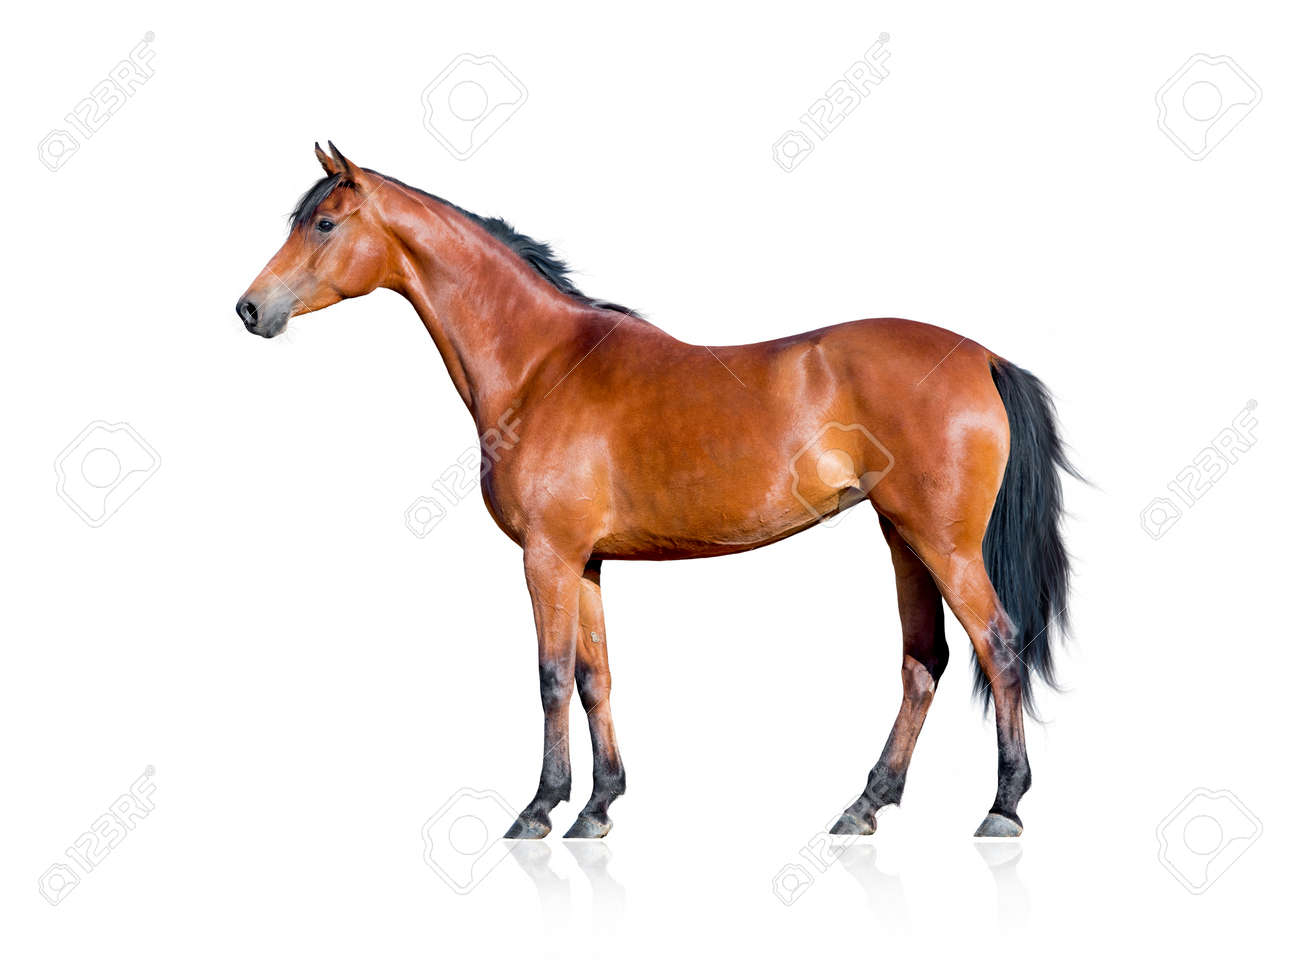 Bay Horse Isolated On White Background Stock Photo Picture And Royalty Free Image Image 35870782